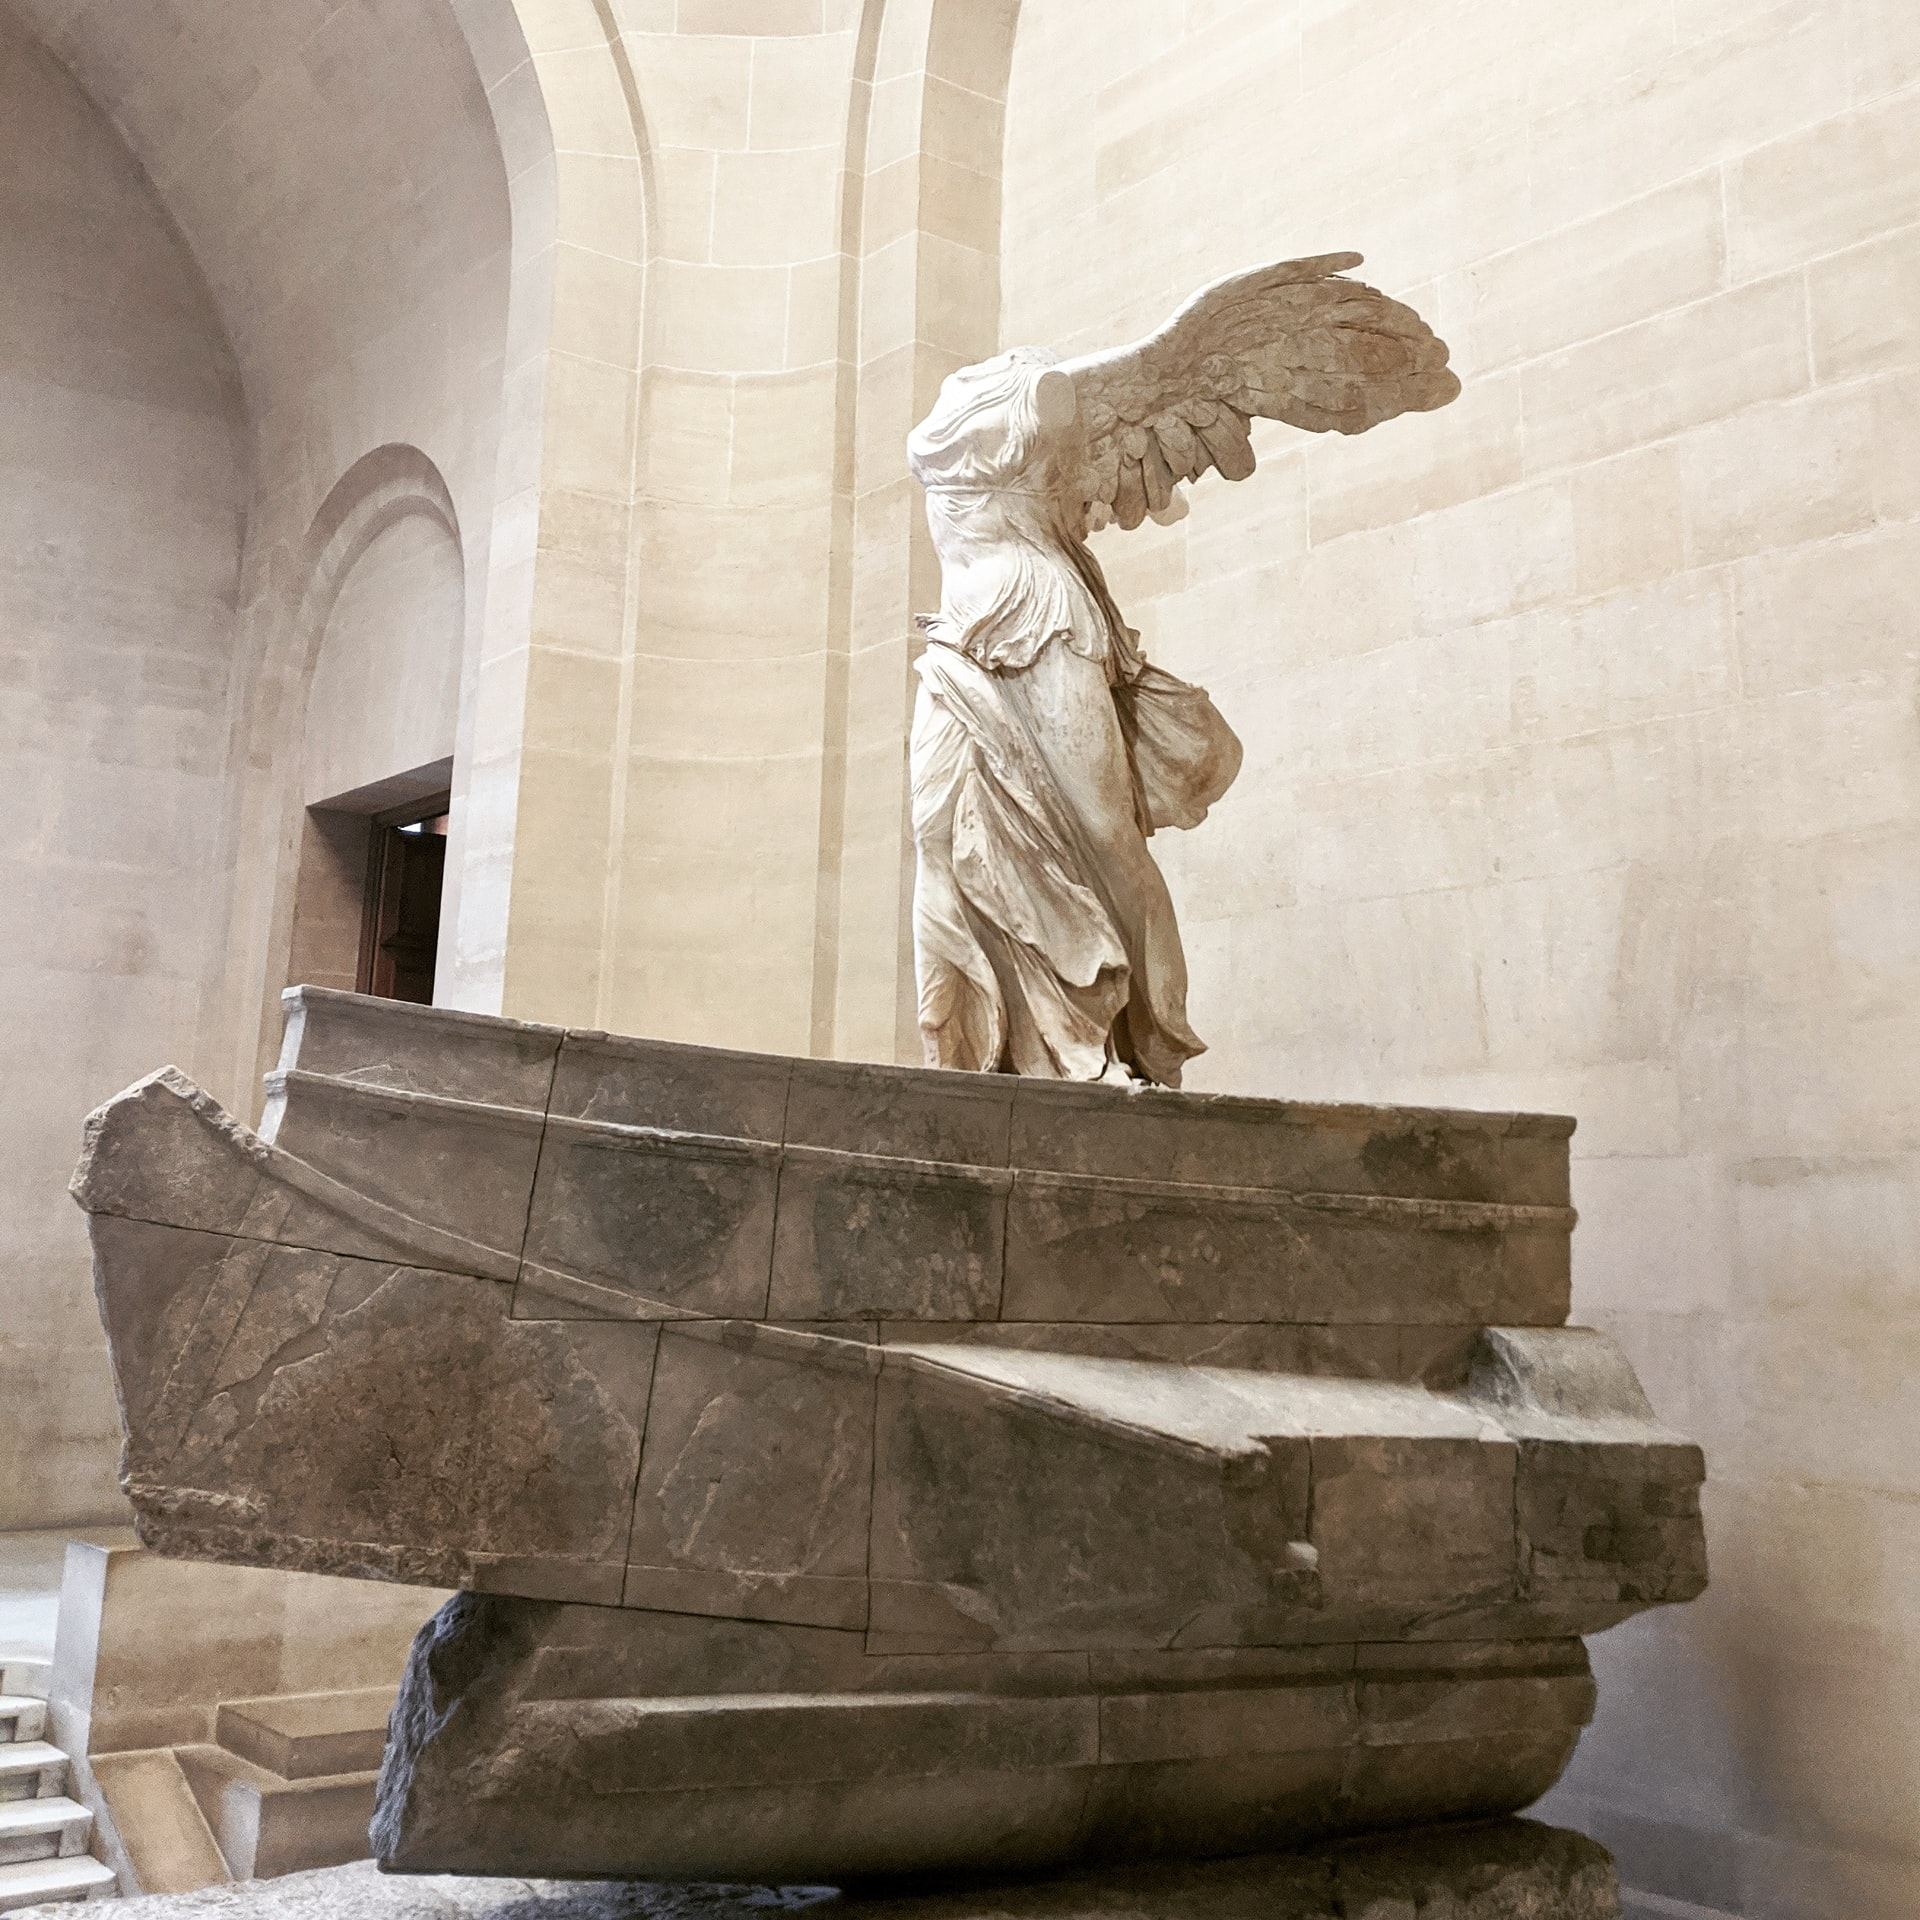 Winged statue at the Louvre